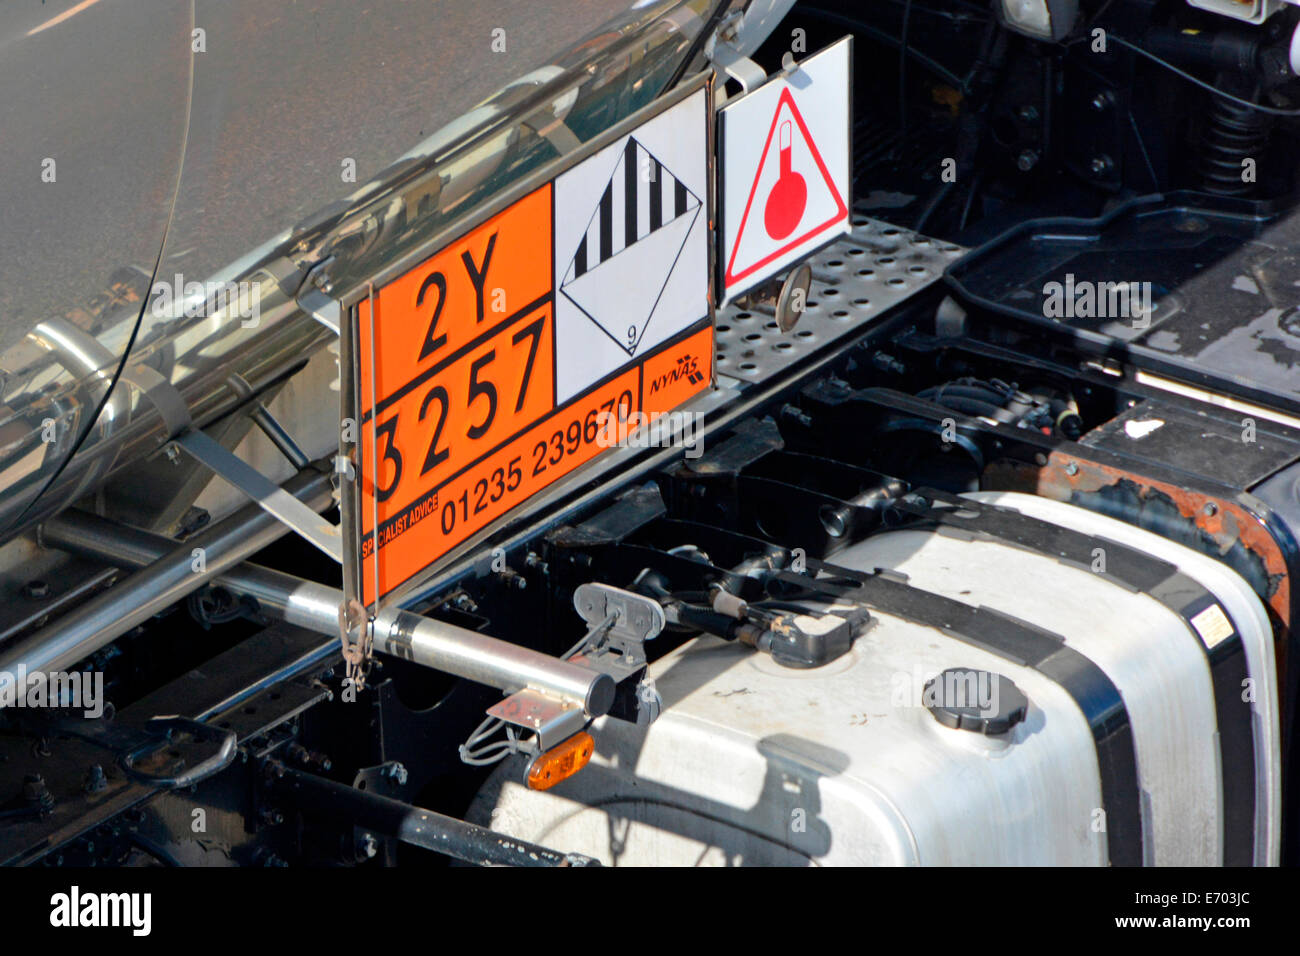 Close up view of Hazchem Hazardous Chemicals and Dangerous Goods emergency information sign & fuel tank on side - Stock Image